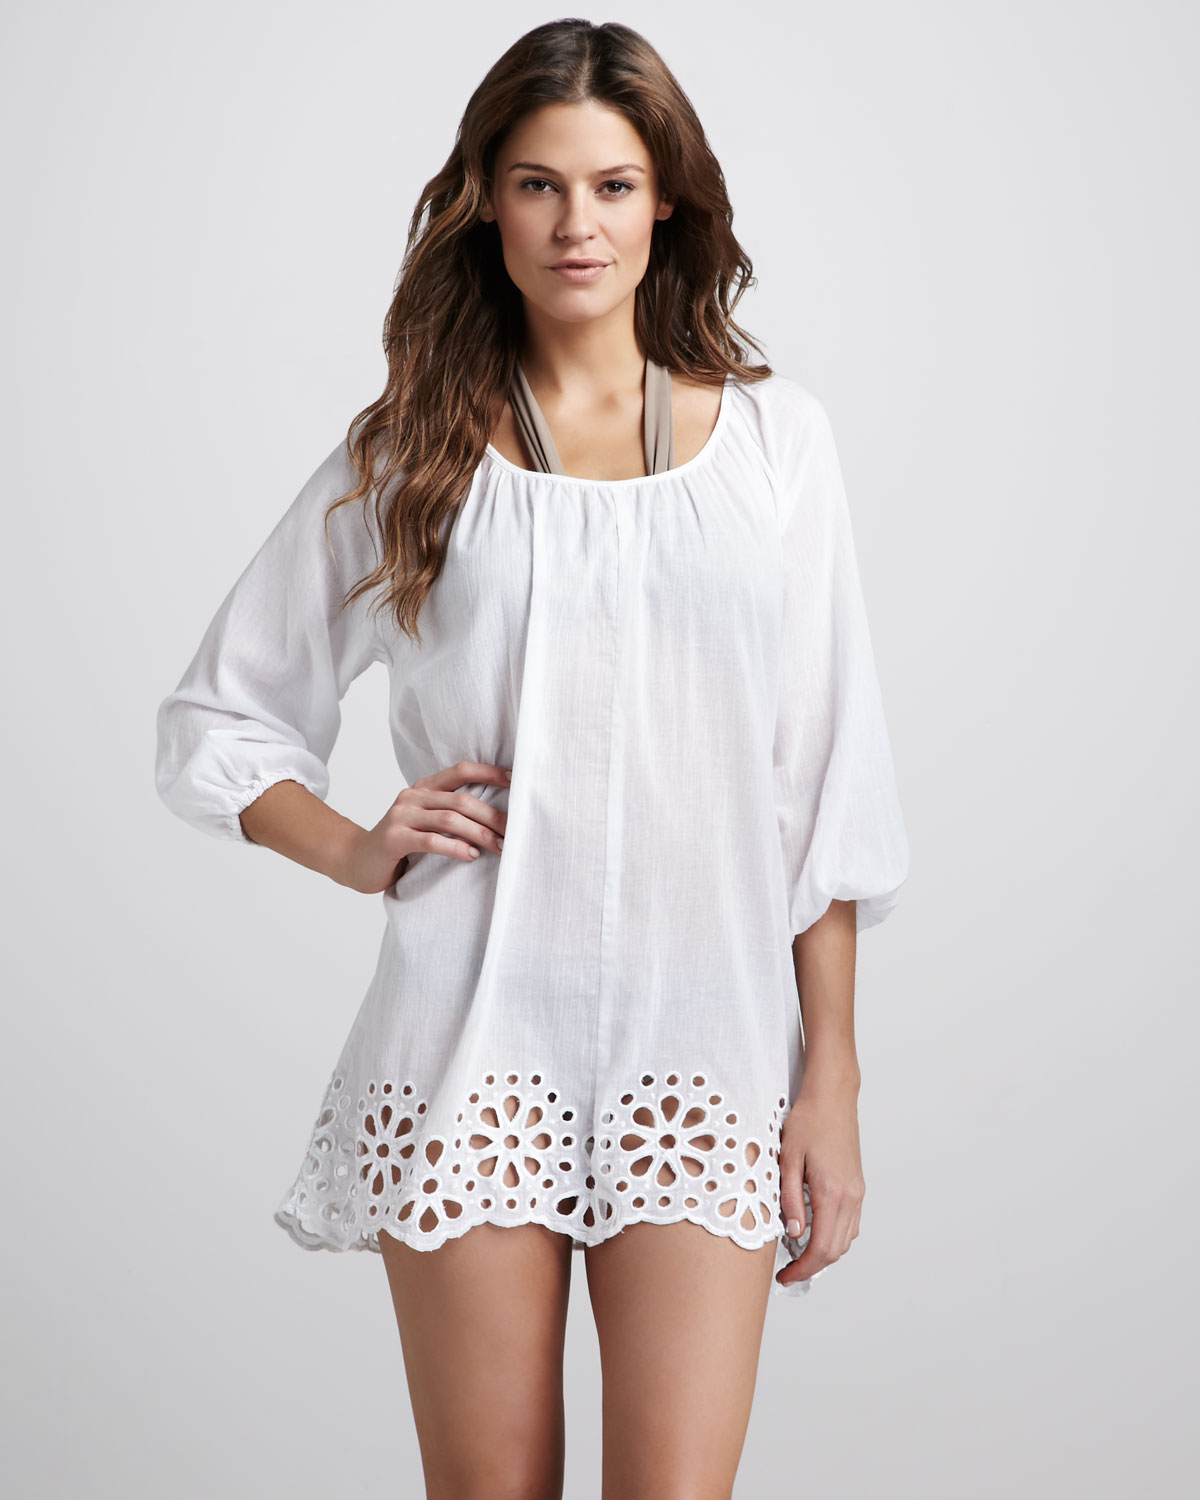 1eb3781d46 Seafolly Satisfaction Eyelet Hem Cover-Up Caftan in White - Lyst